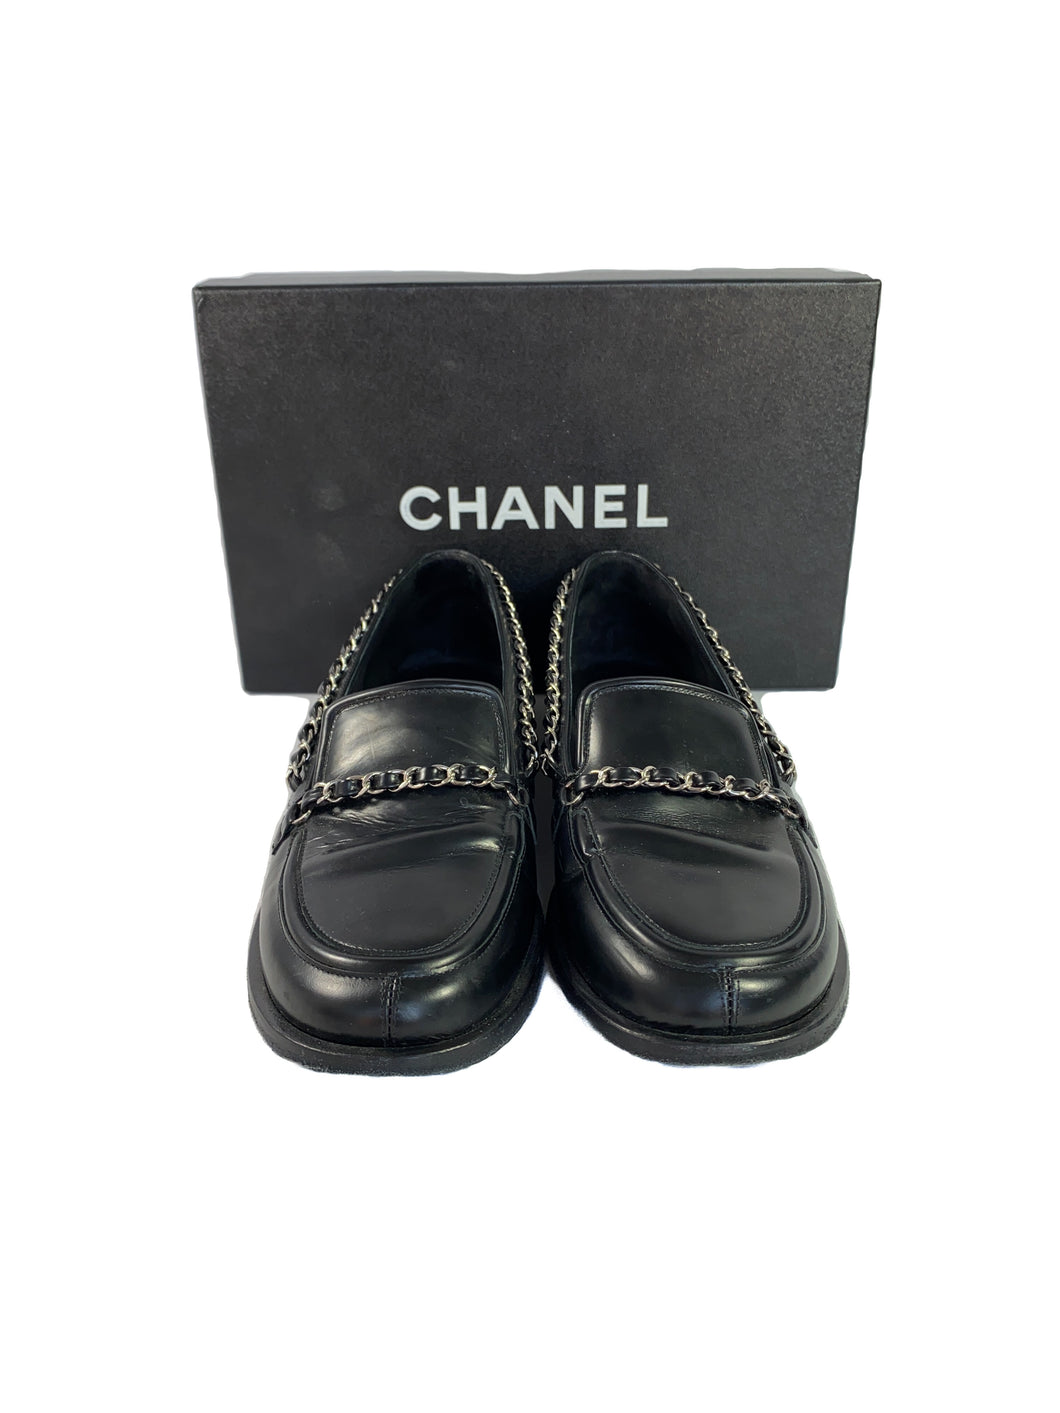 Chanel black leather chain loafers size 39